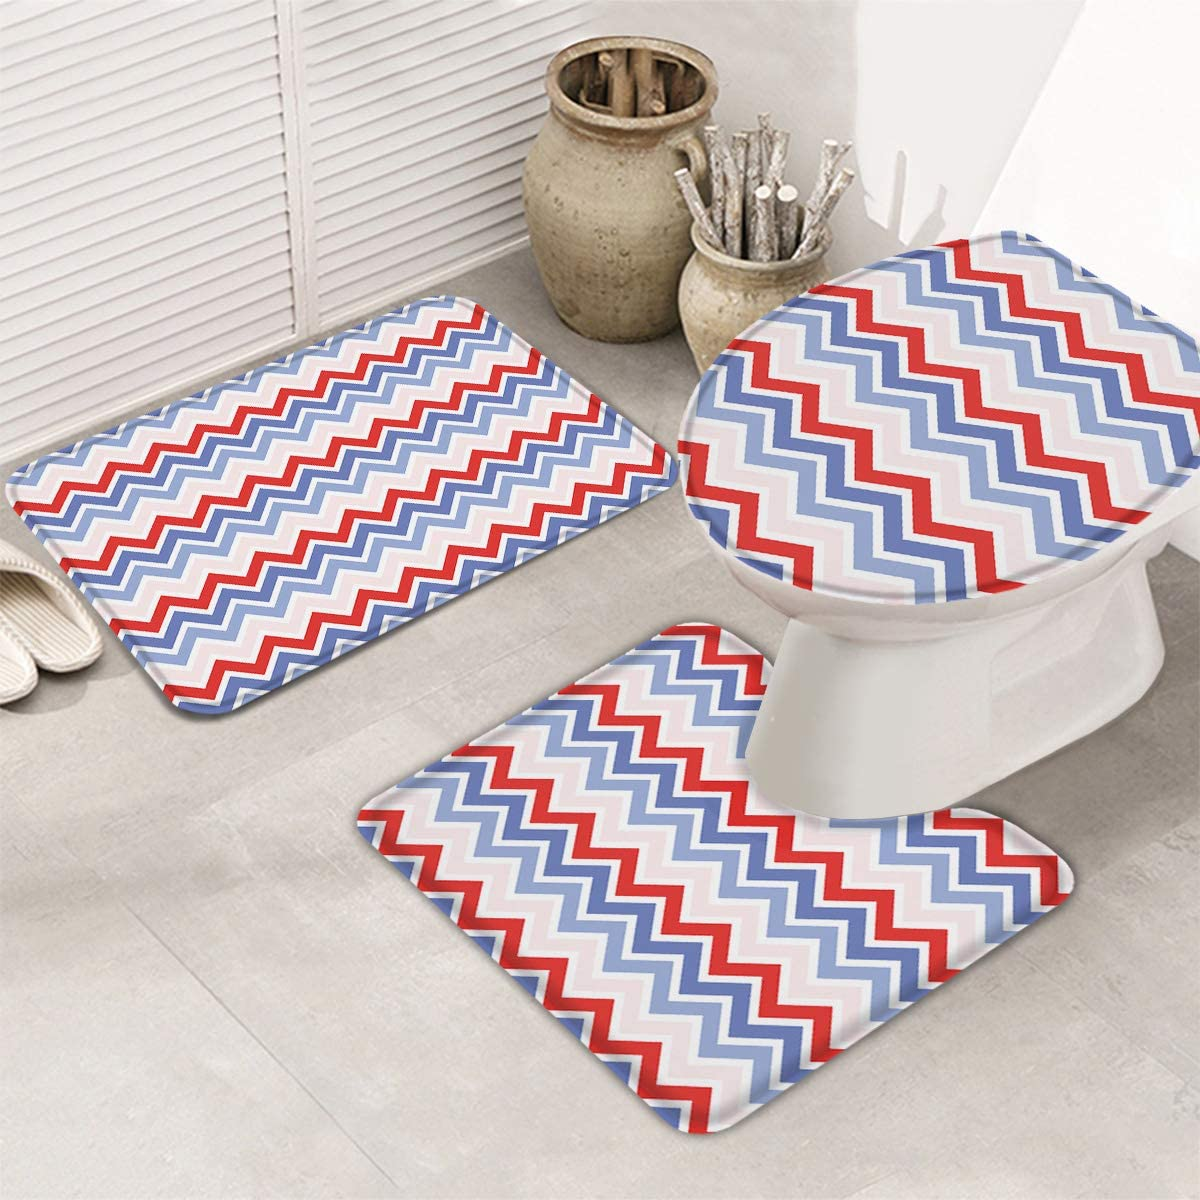 Fangship Limited time sale 3 Piece Bathroom Rugs Set Non Mats for Bath Cheap mail order shopping Sl